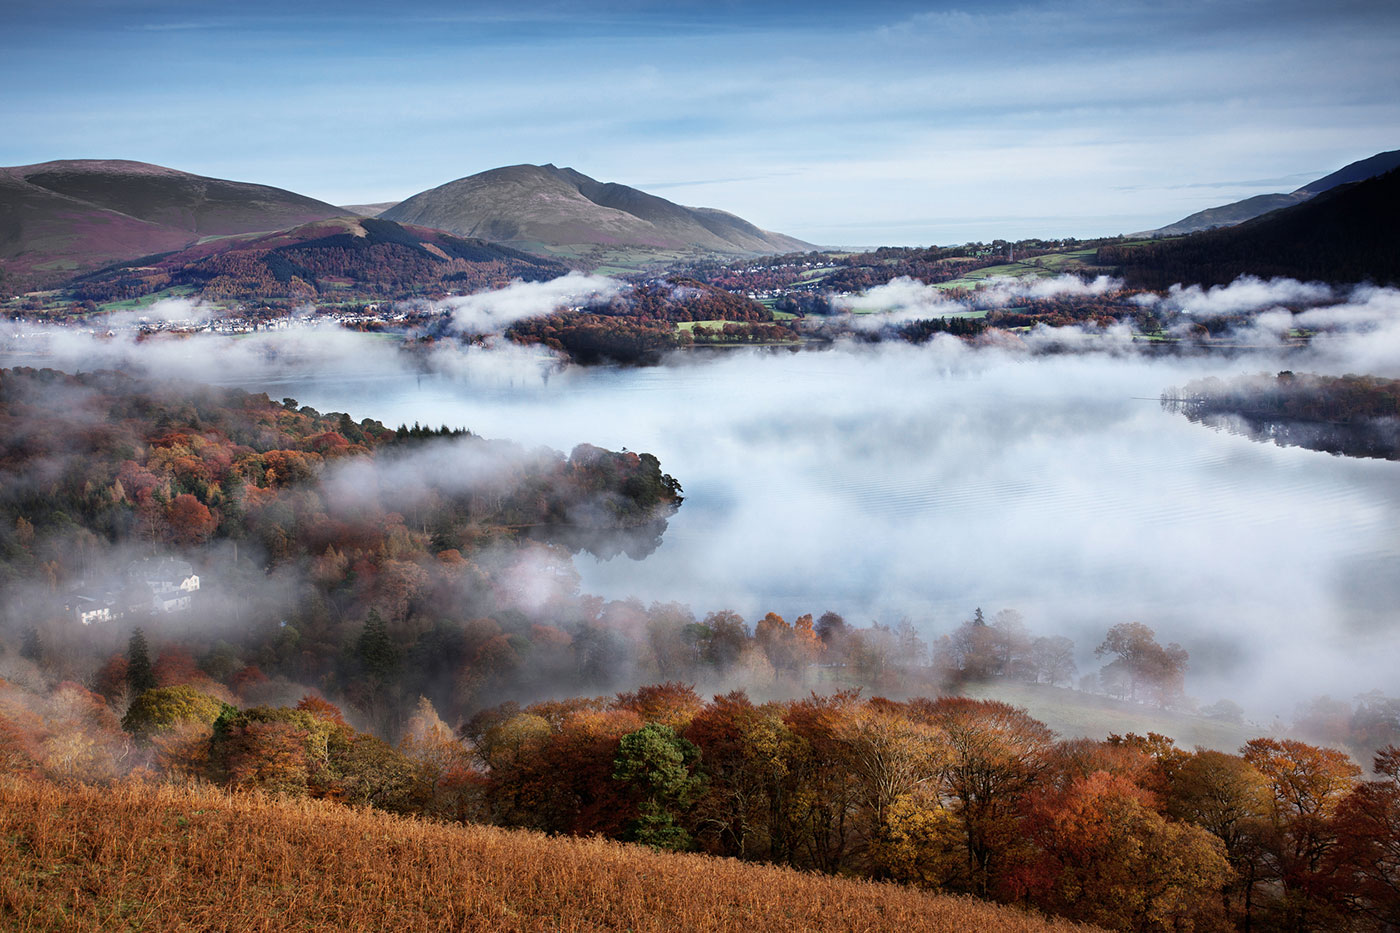 Autumnal-Mists-over-Keswick-and-Derwent-Water.jpg